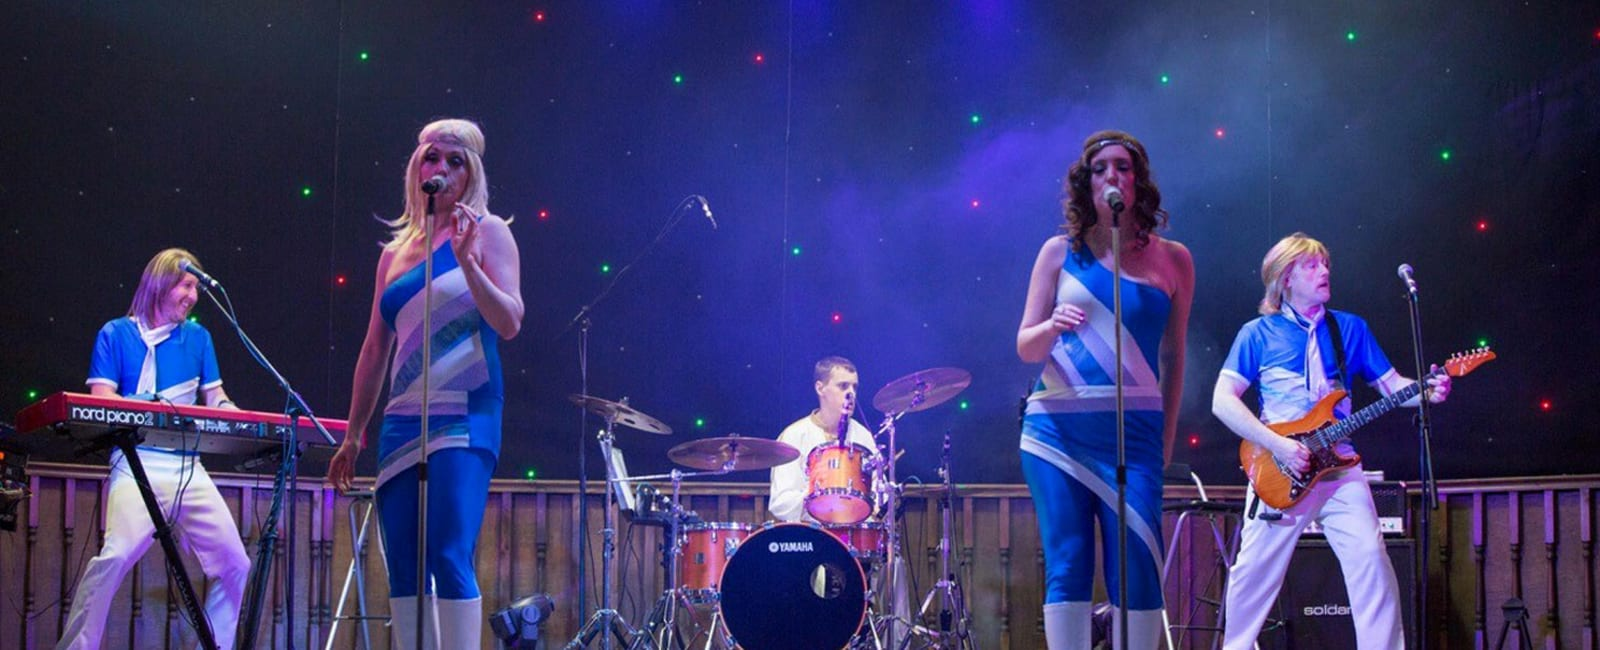 Abba Fever performing